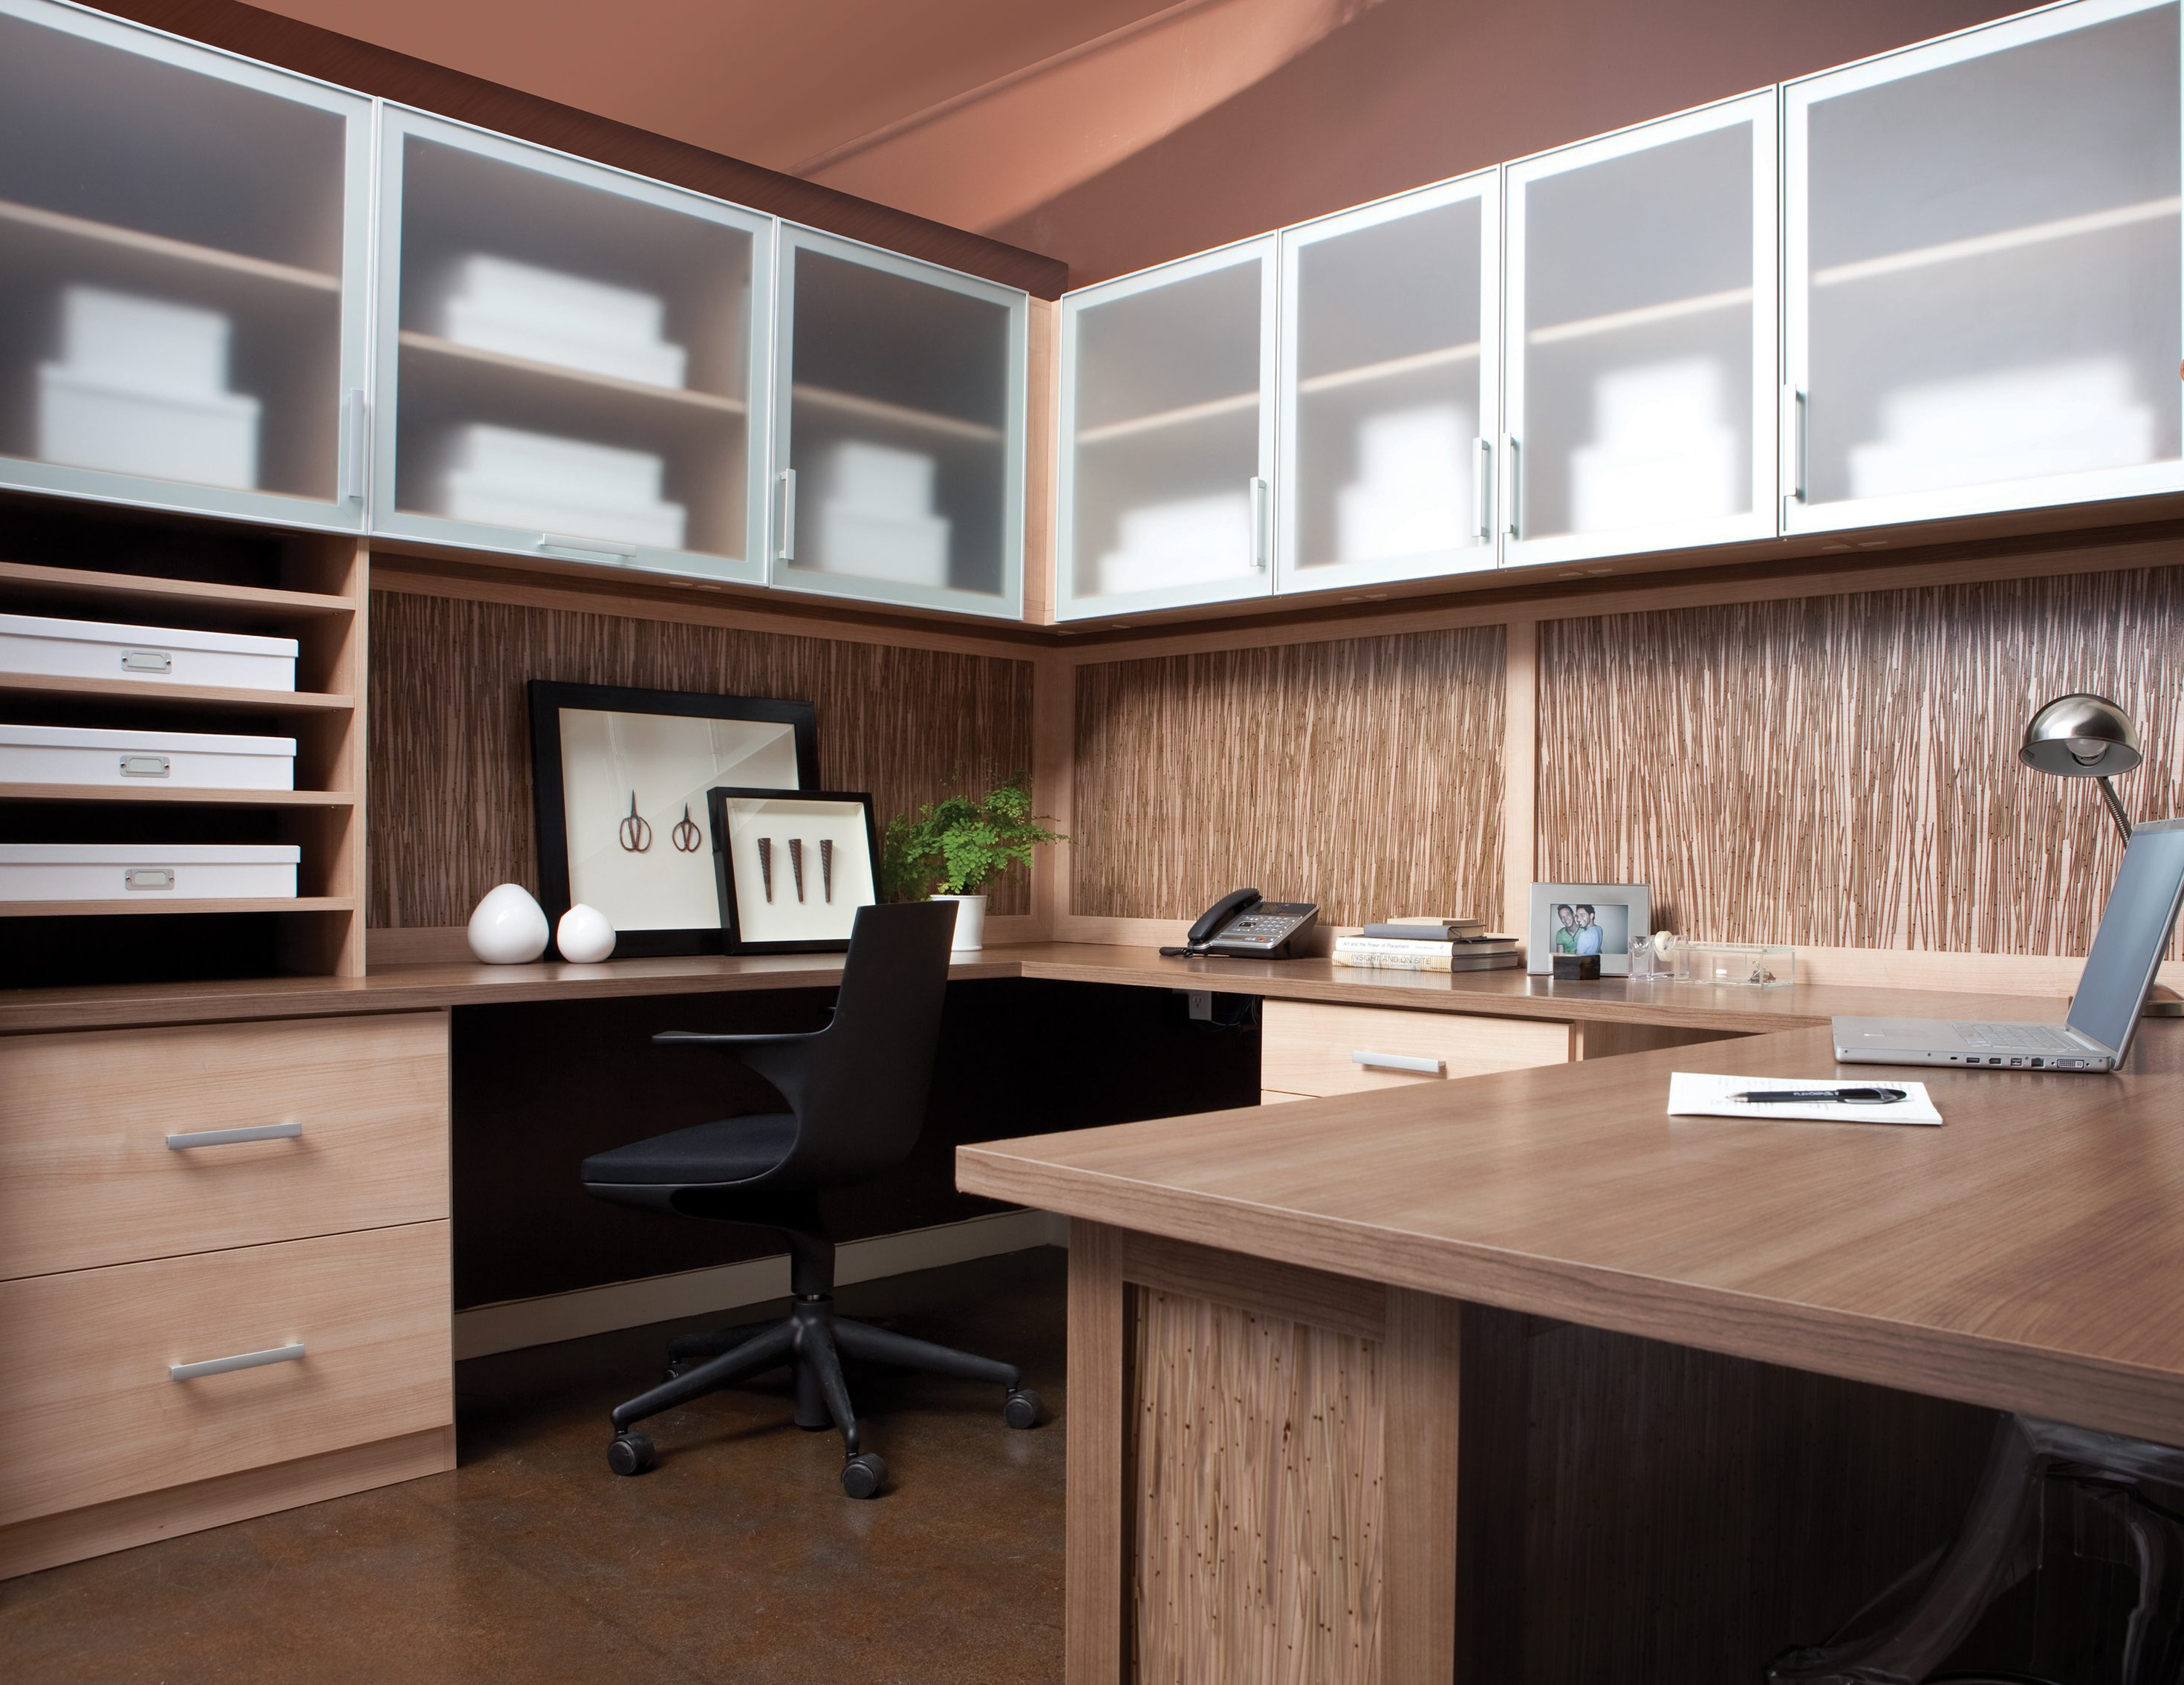 Awesome Light Brown Wood Grain Office With Shelves Drawers Wrap Around Desk And  Cabinets With Frosted Glass